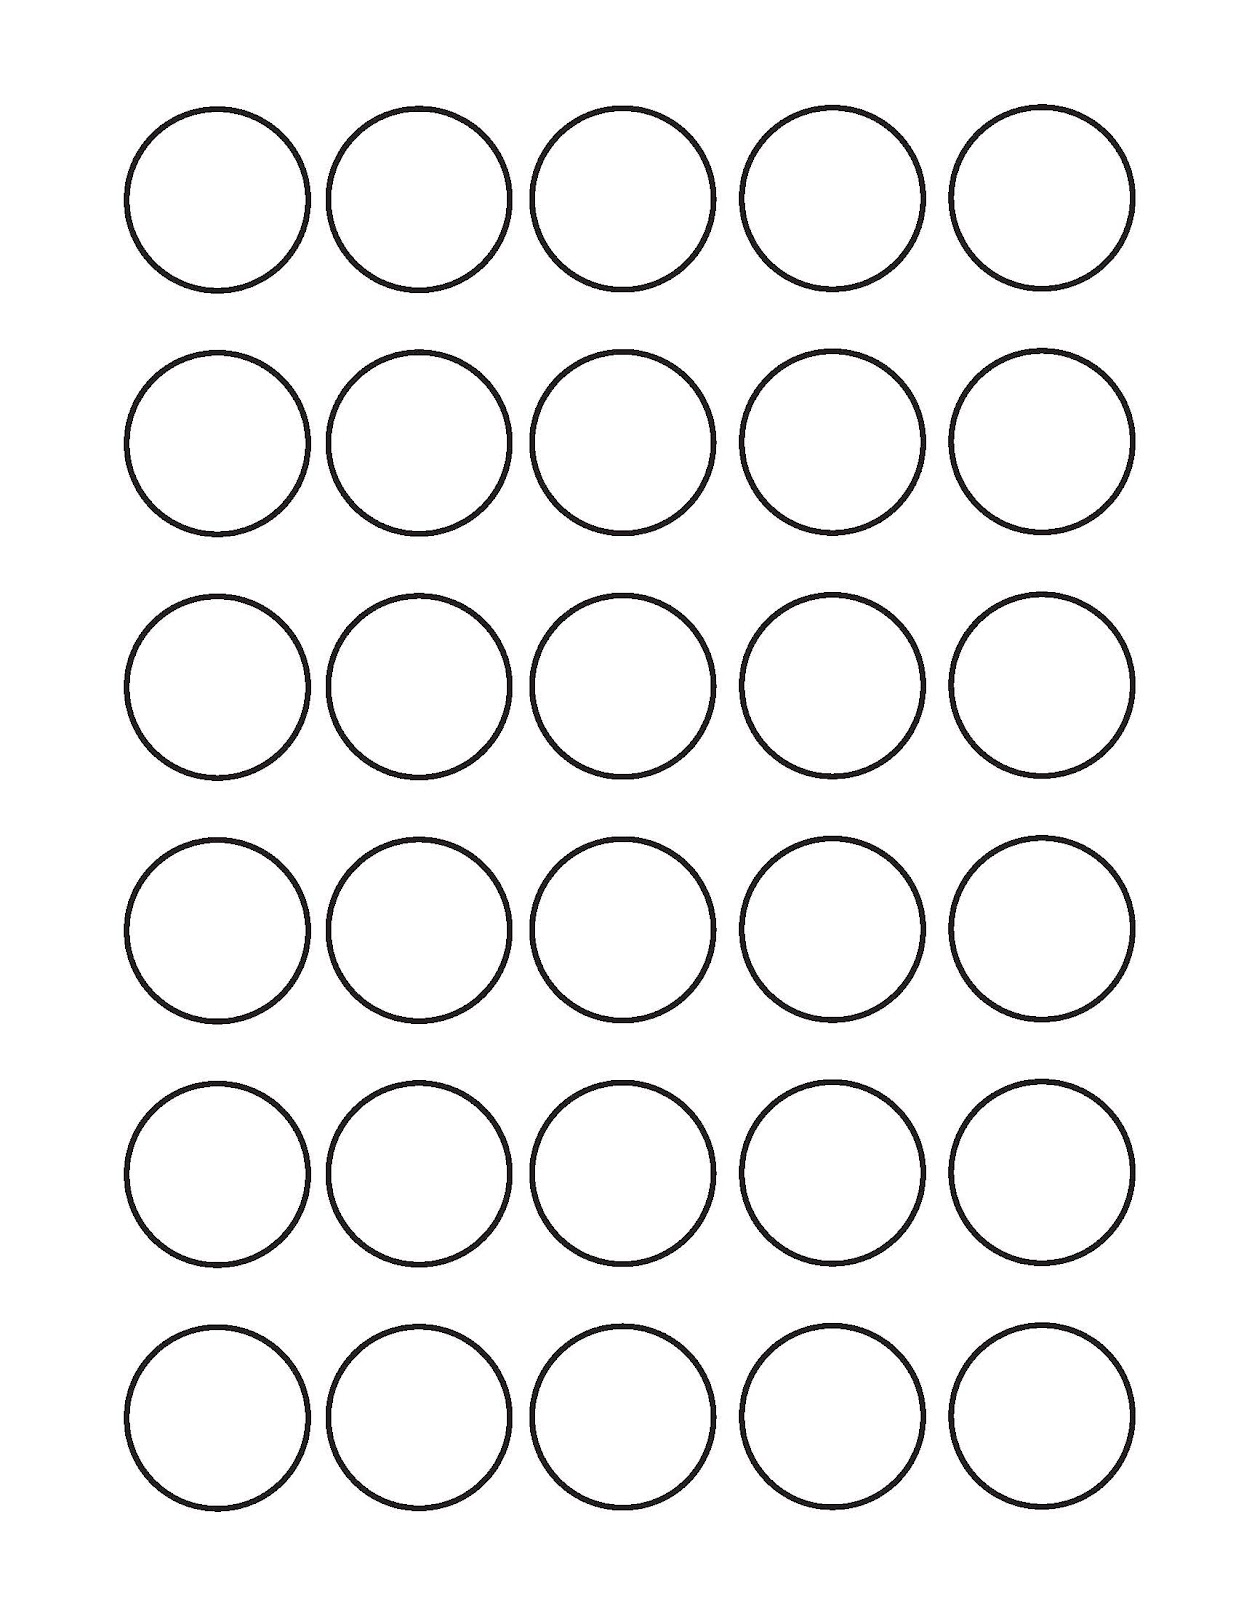 Circle Coloring Pages Printable Coloring Pages